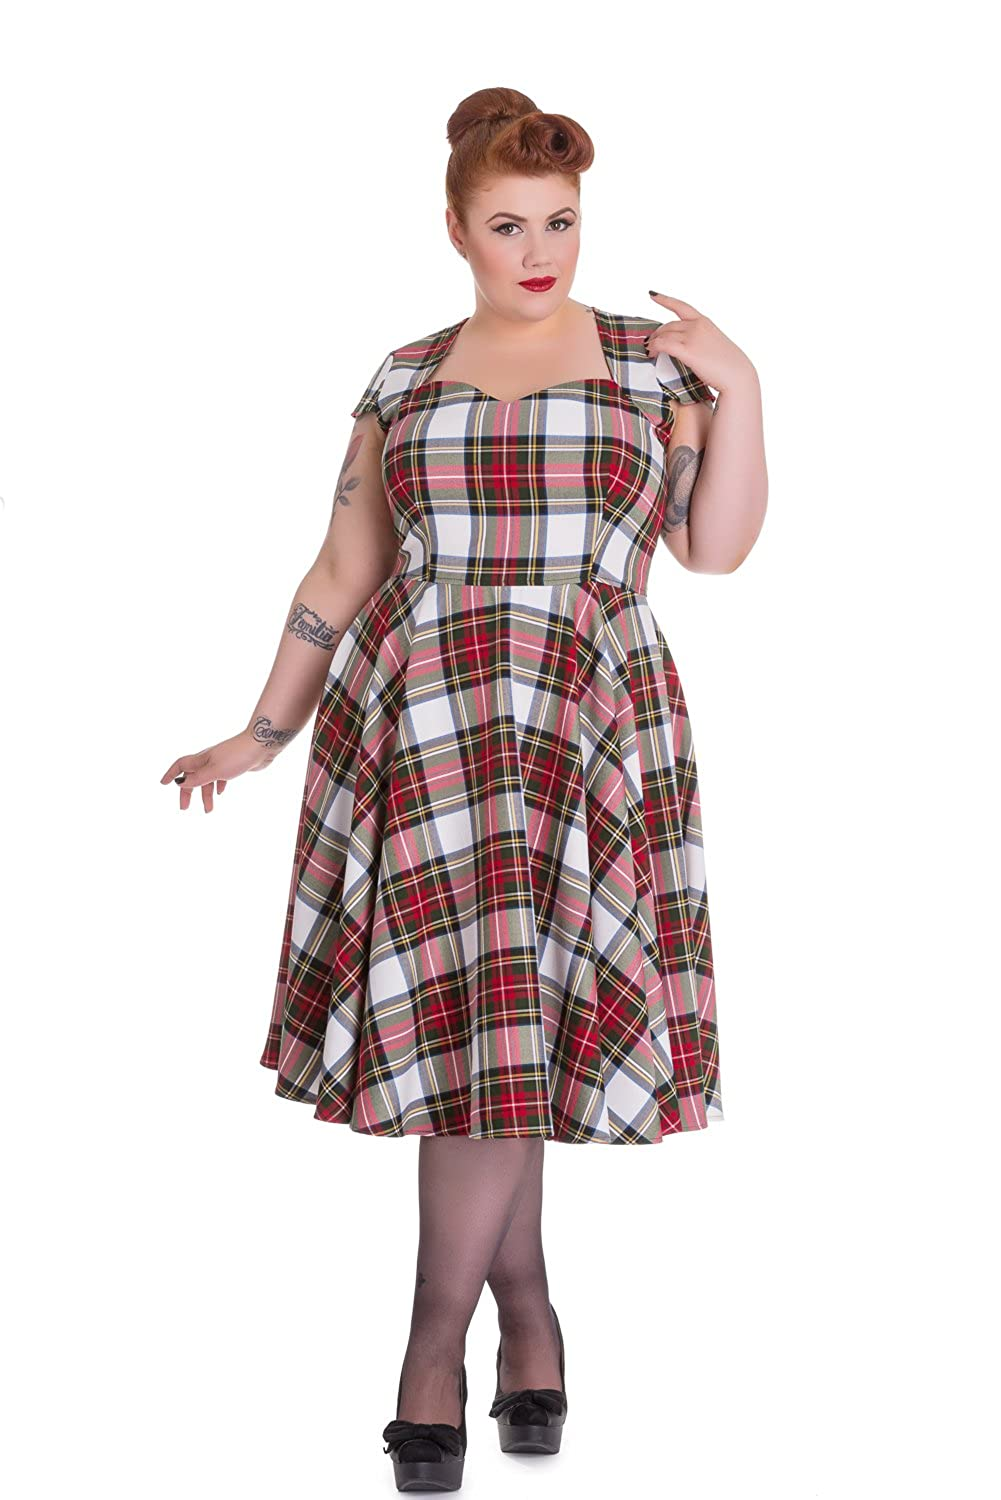 1950s Plus Size Dresses, Clothing and Costumes Hell Bunny Plus Vintage Inspired London Love Stewart Tartan Flare Dress $95.00 AT vintagedancer.com